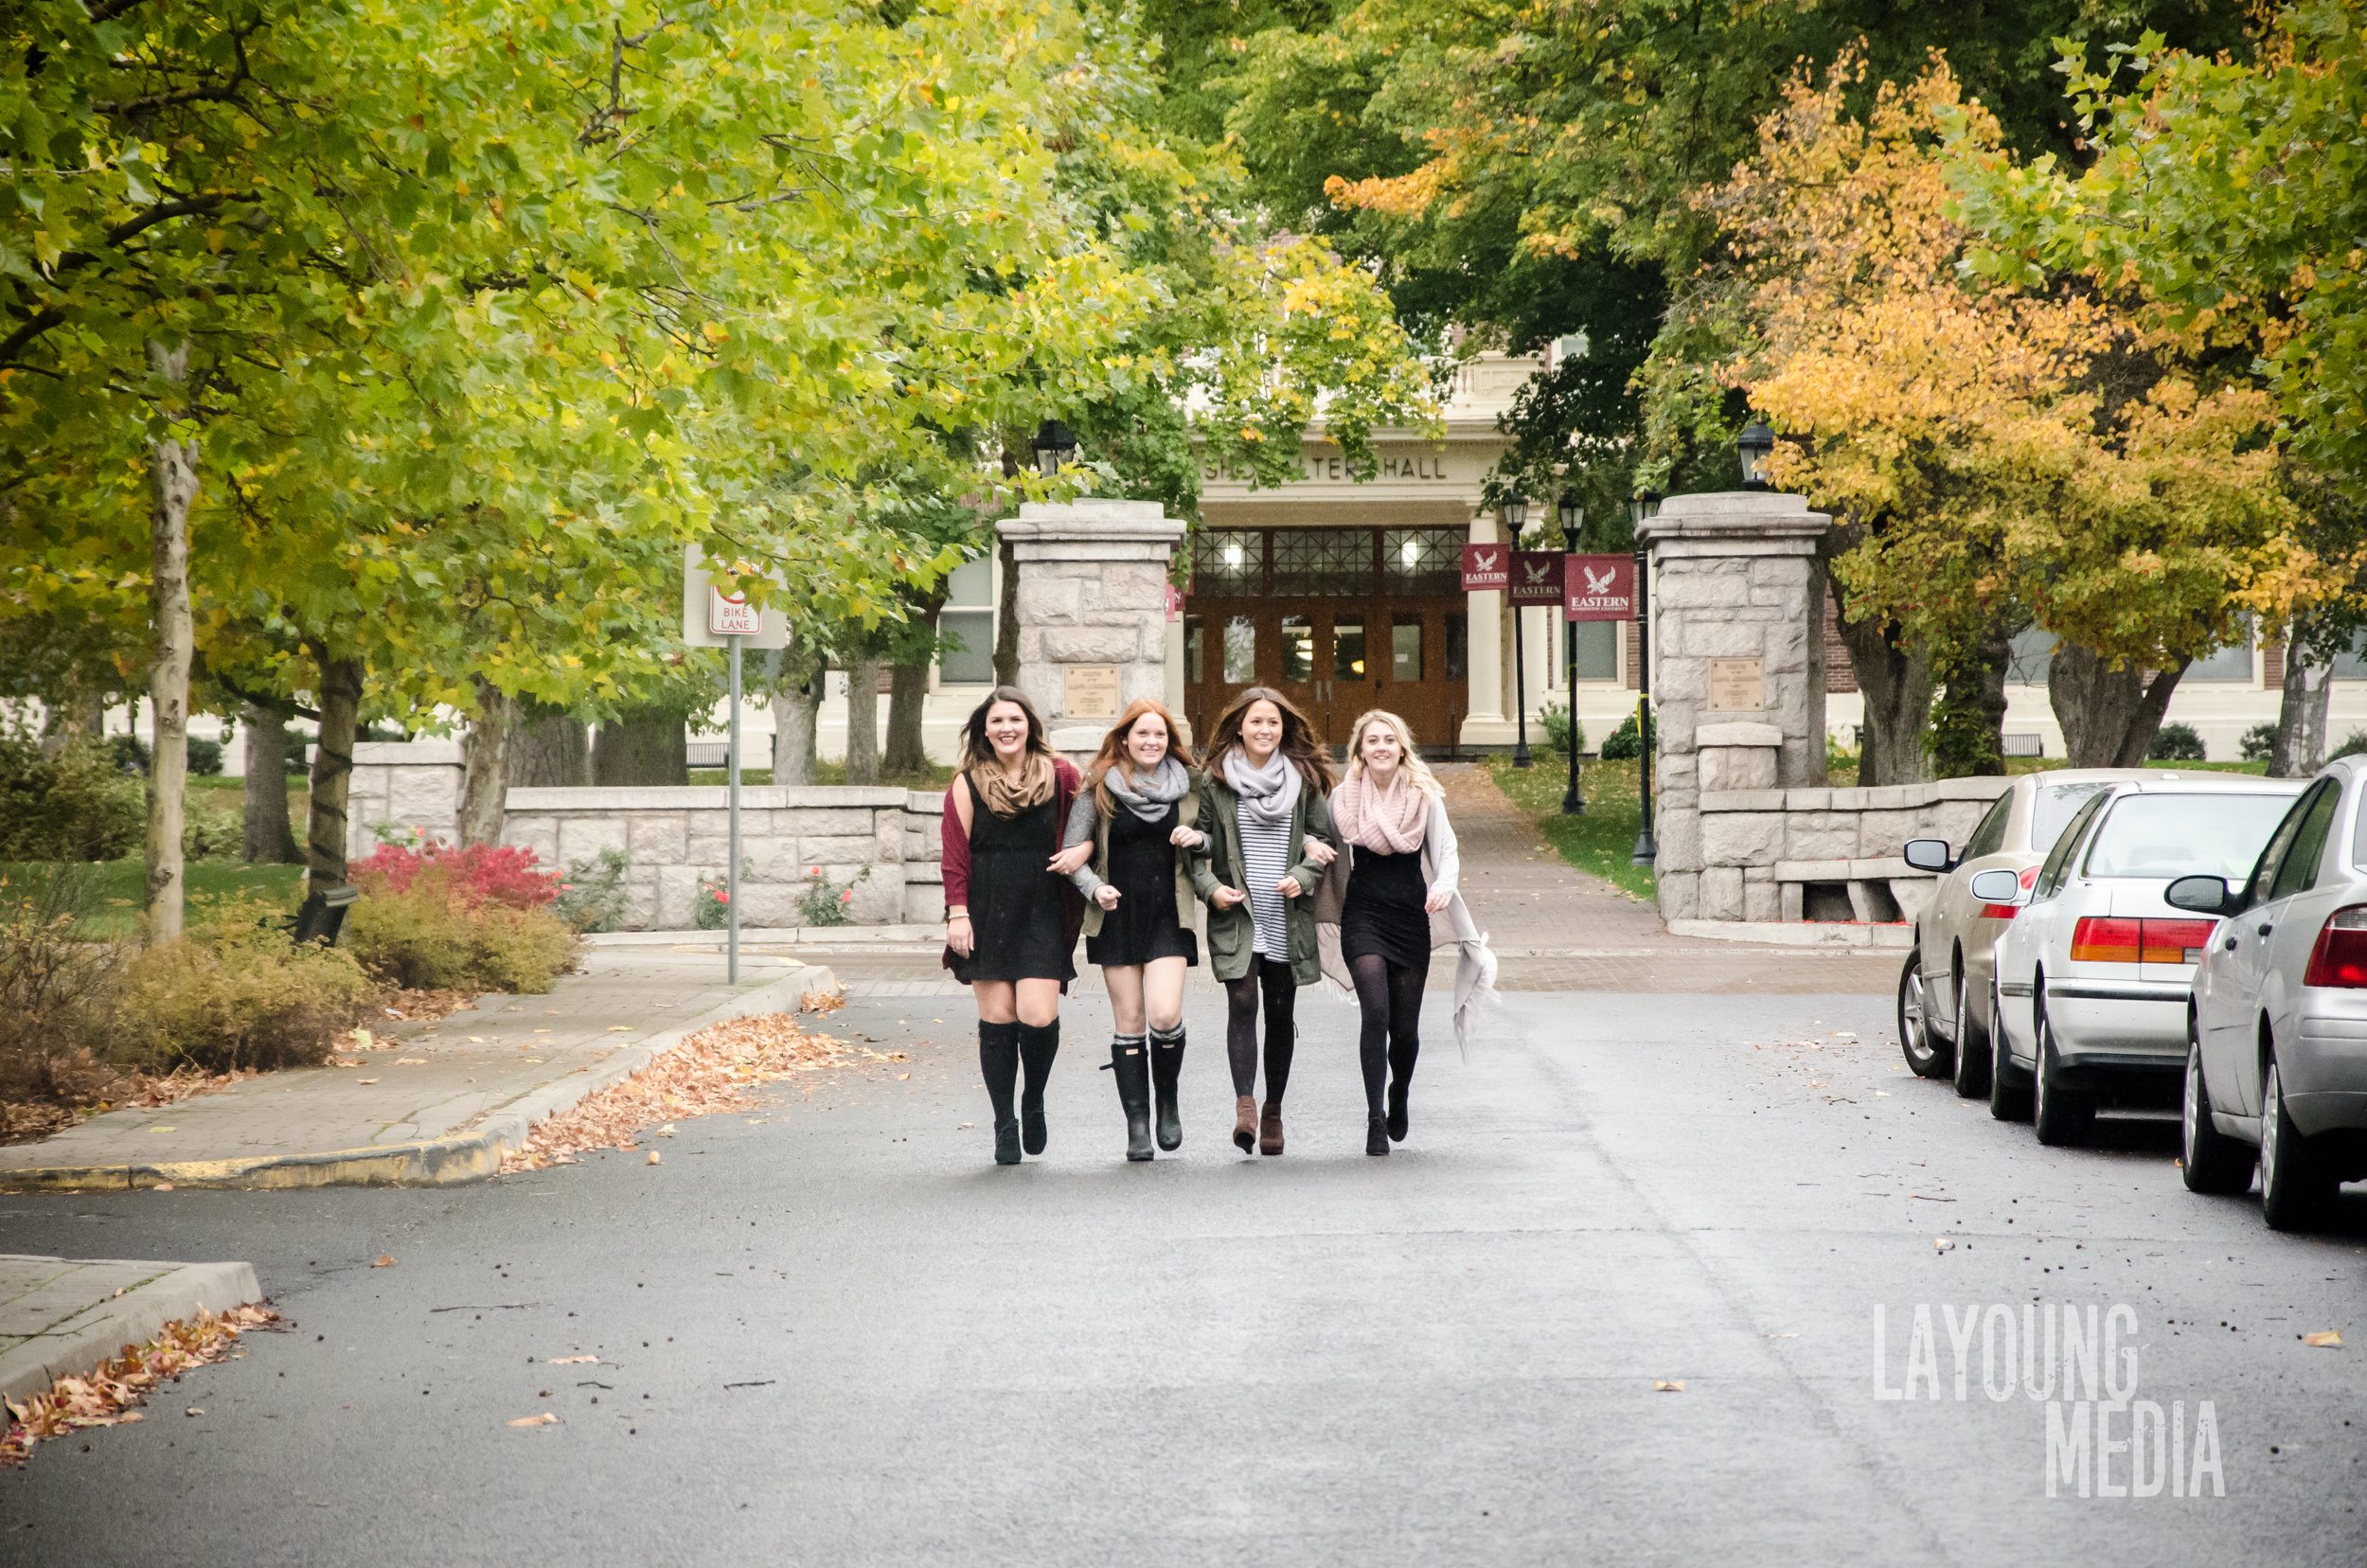 A small group of girls from Alpha Xi Delta walking toward the camera during our 3rd to last shot of the day. The rain was just starting to come down.